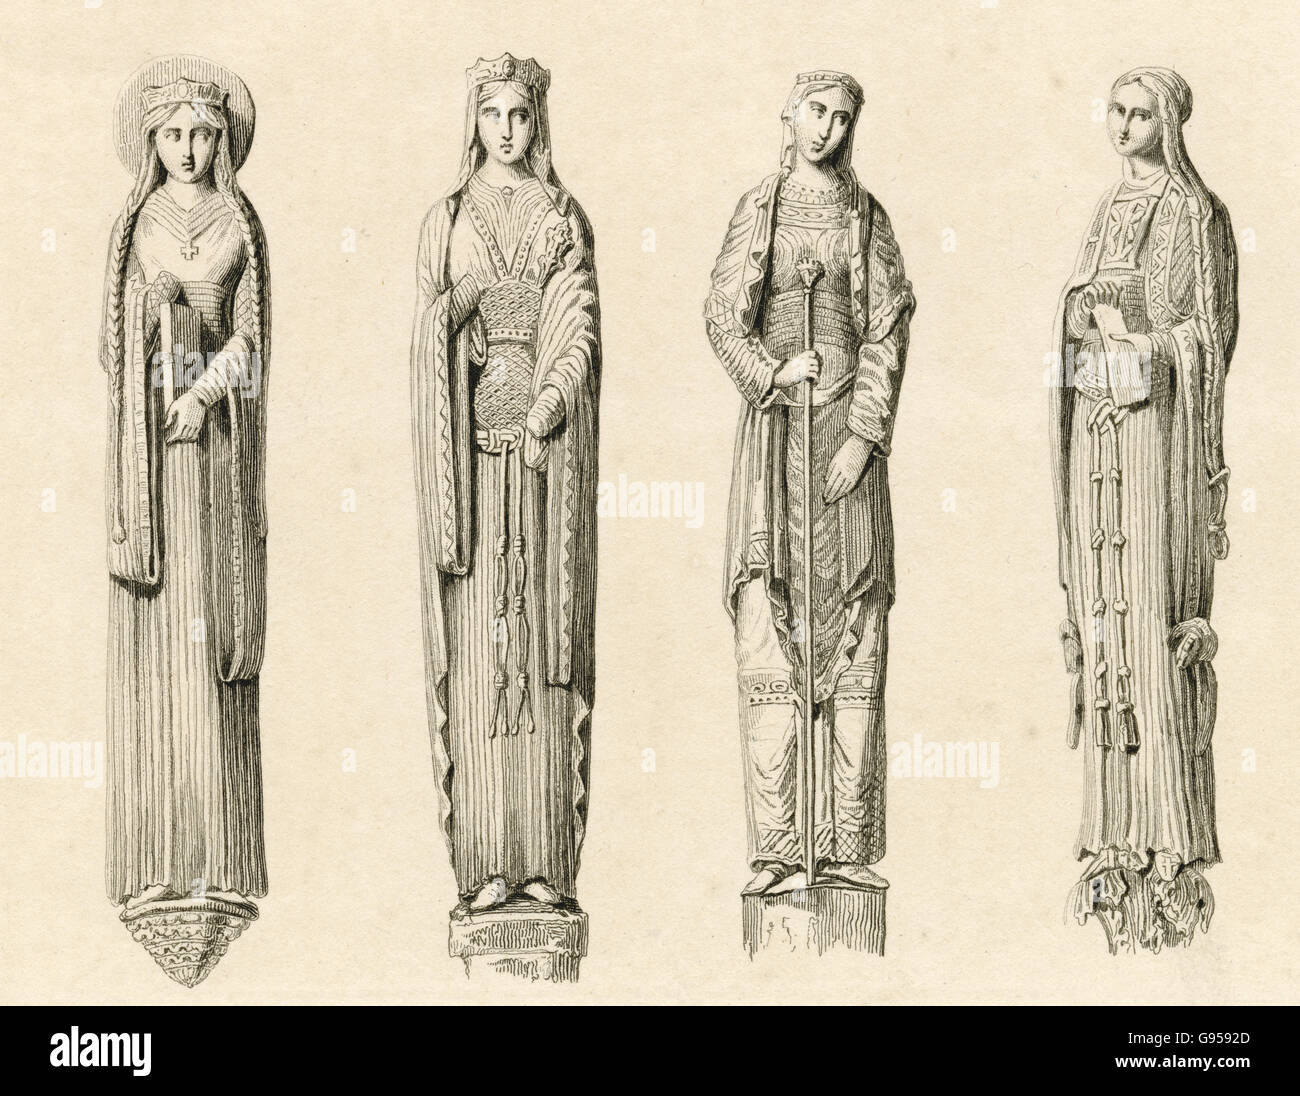 Antique engraving, circa 1880, of statues depicting 13th century figures of Queens and Princesses at the Chartres - Stock Image